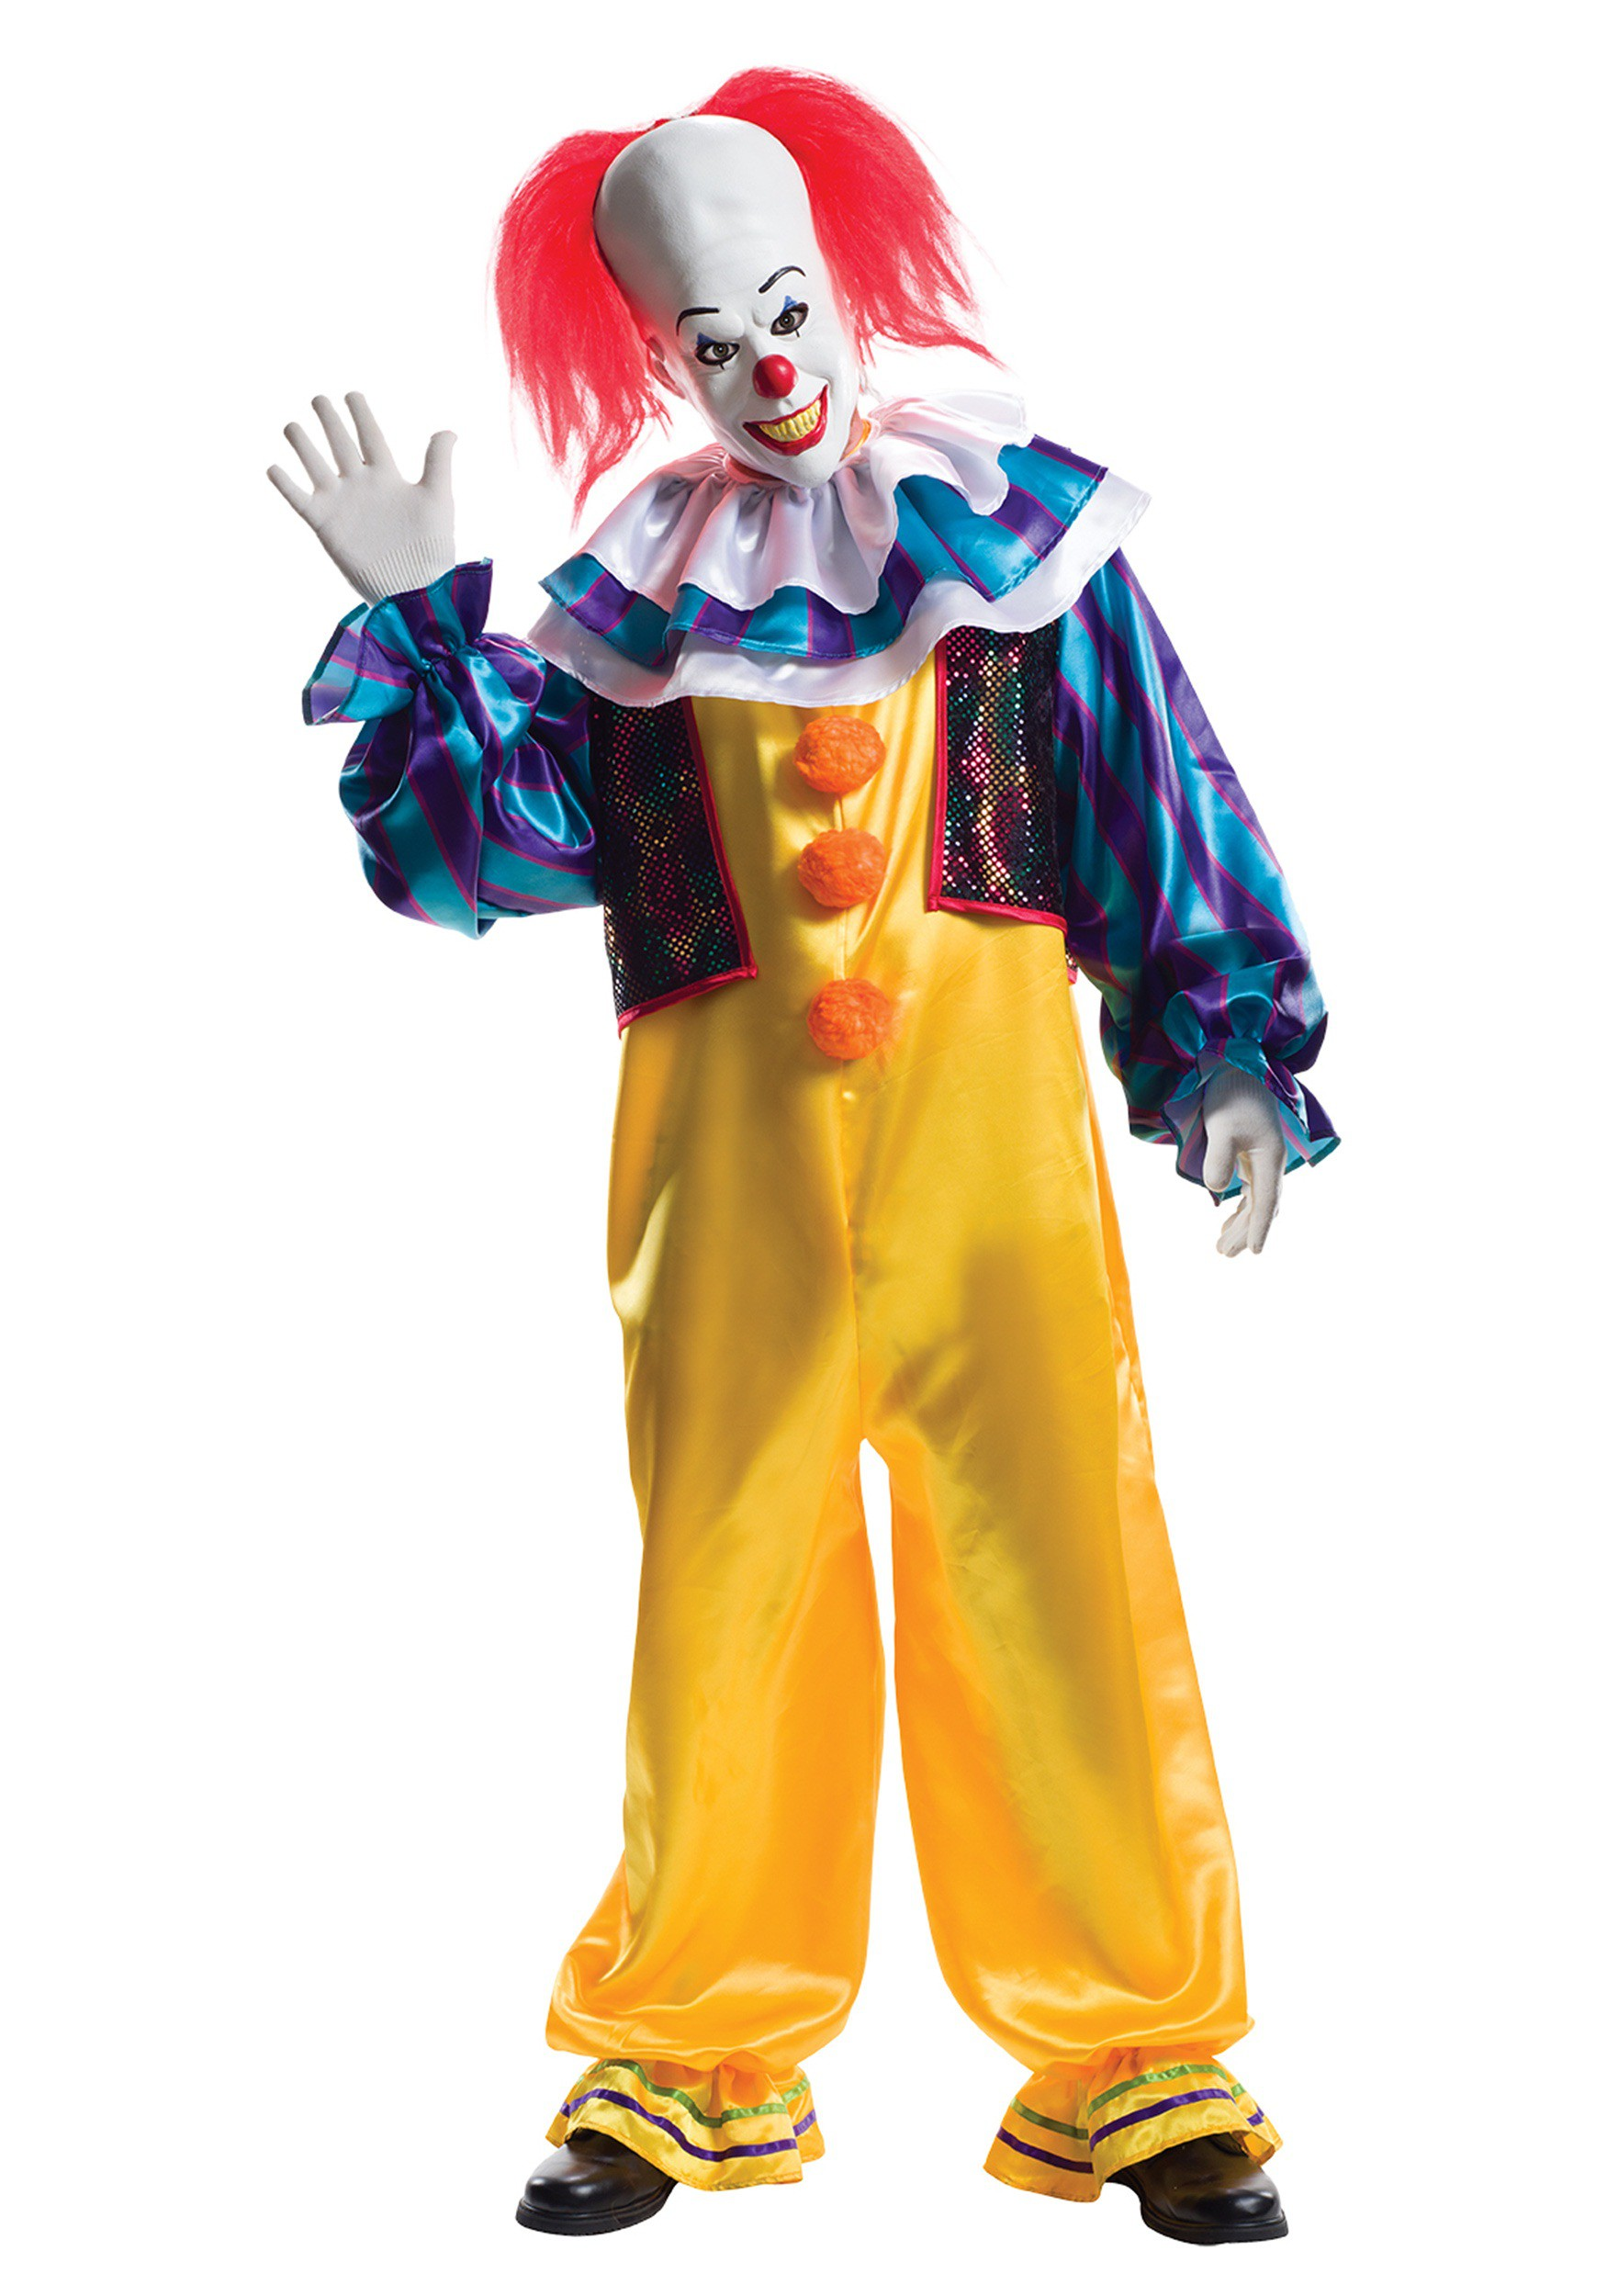 Pennywise The Clown Costumes - HalloweenCostumes.com